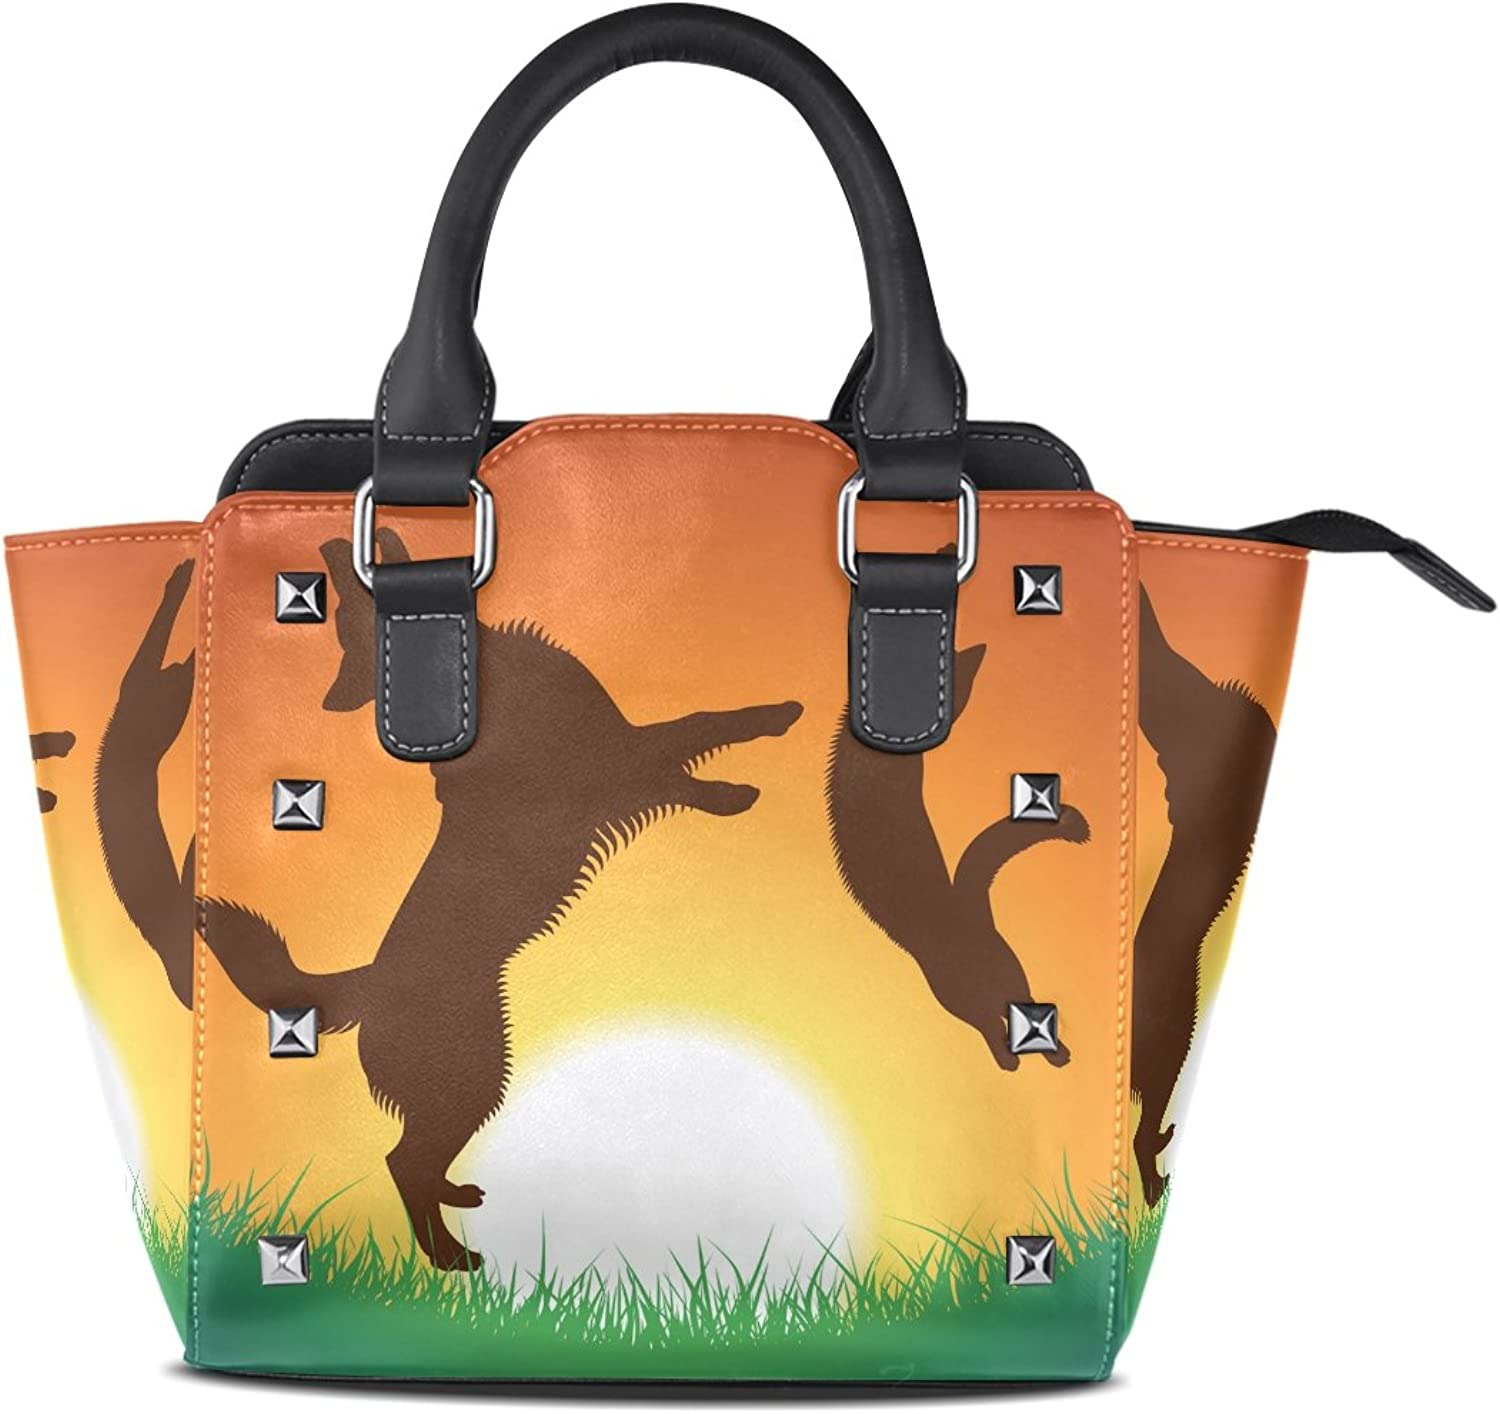 Sunlome Cat and Dog Jumping The Sunset Print Handbags Women's PU Leather Top-Handle Shoulder Bags